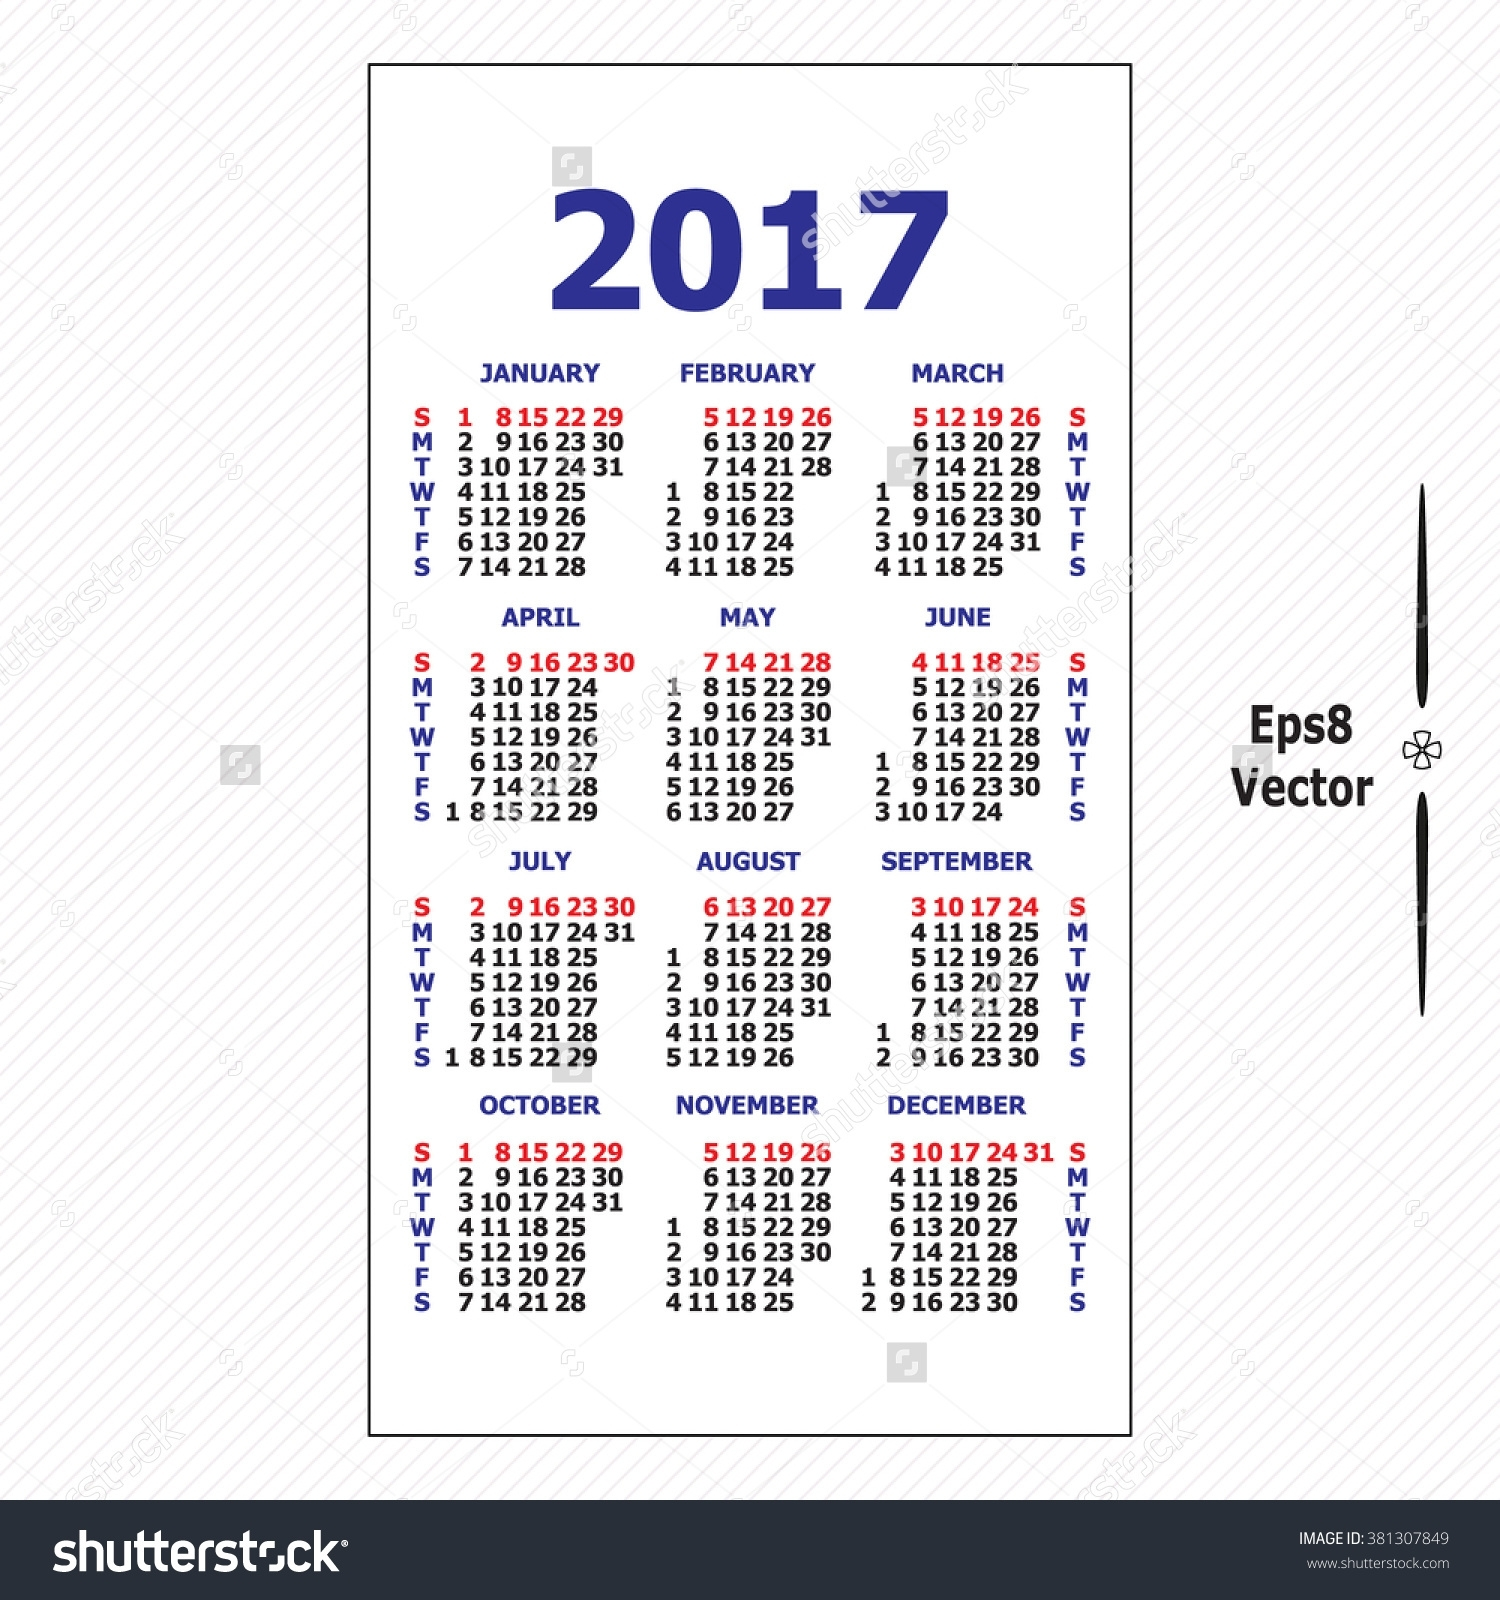 2017 Wallet Calendar | Templates Free Printable in Template For Pocket Sized Calendar